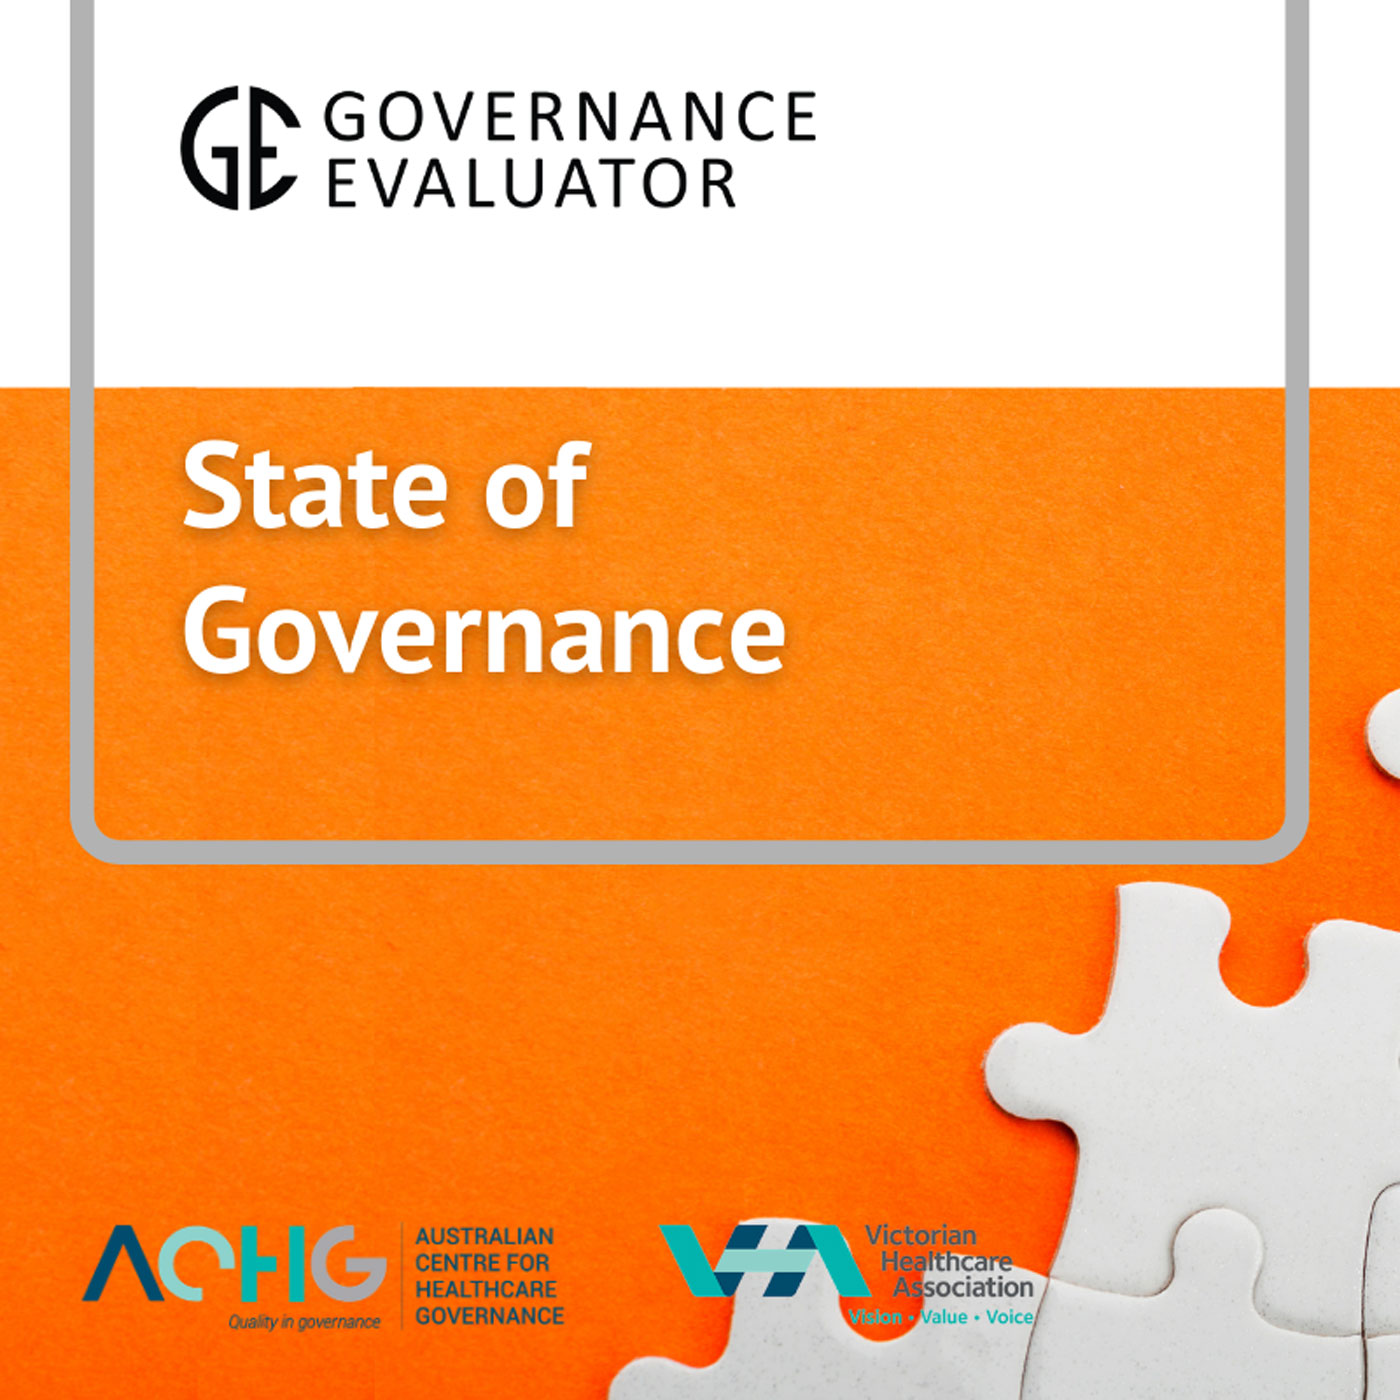 State of Governance